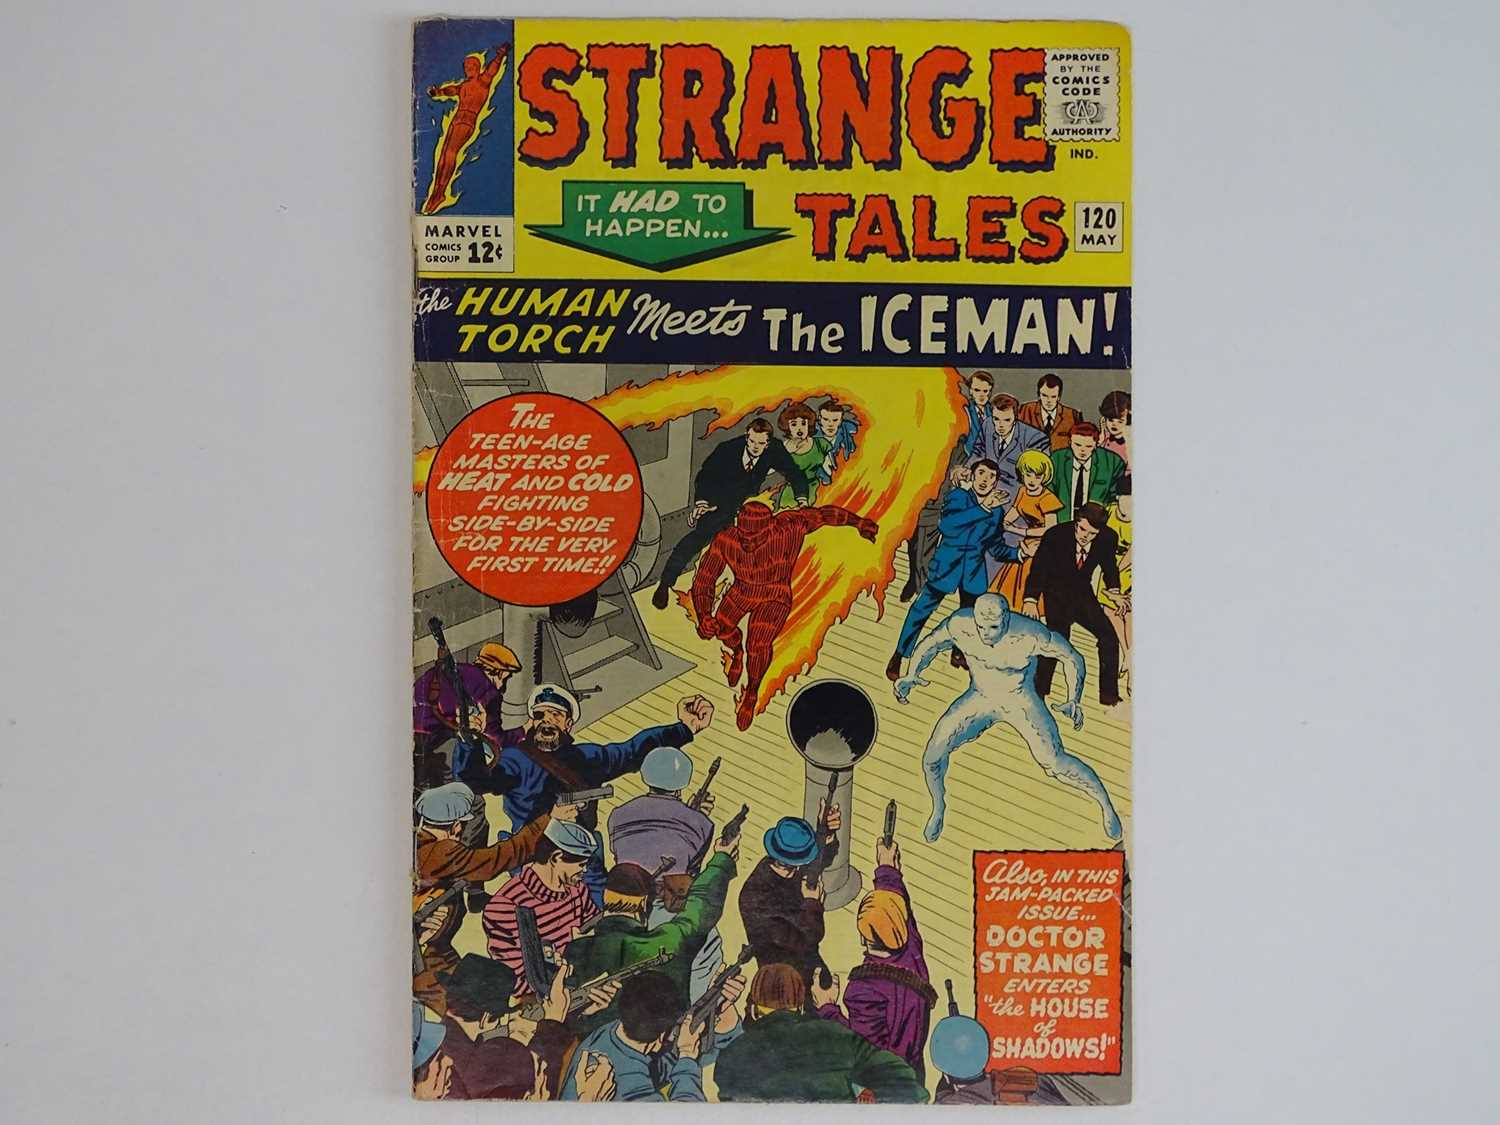 STRANGE TALES: HUMAN TORCH & DR. STRANGE#120 - (1964 - MARVEL) Includes First meeting between